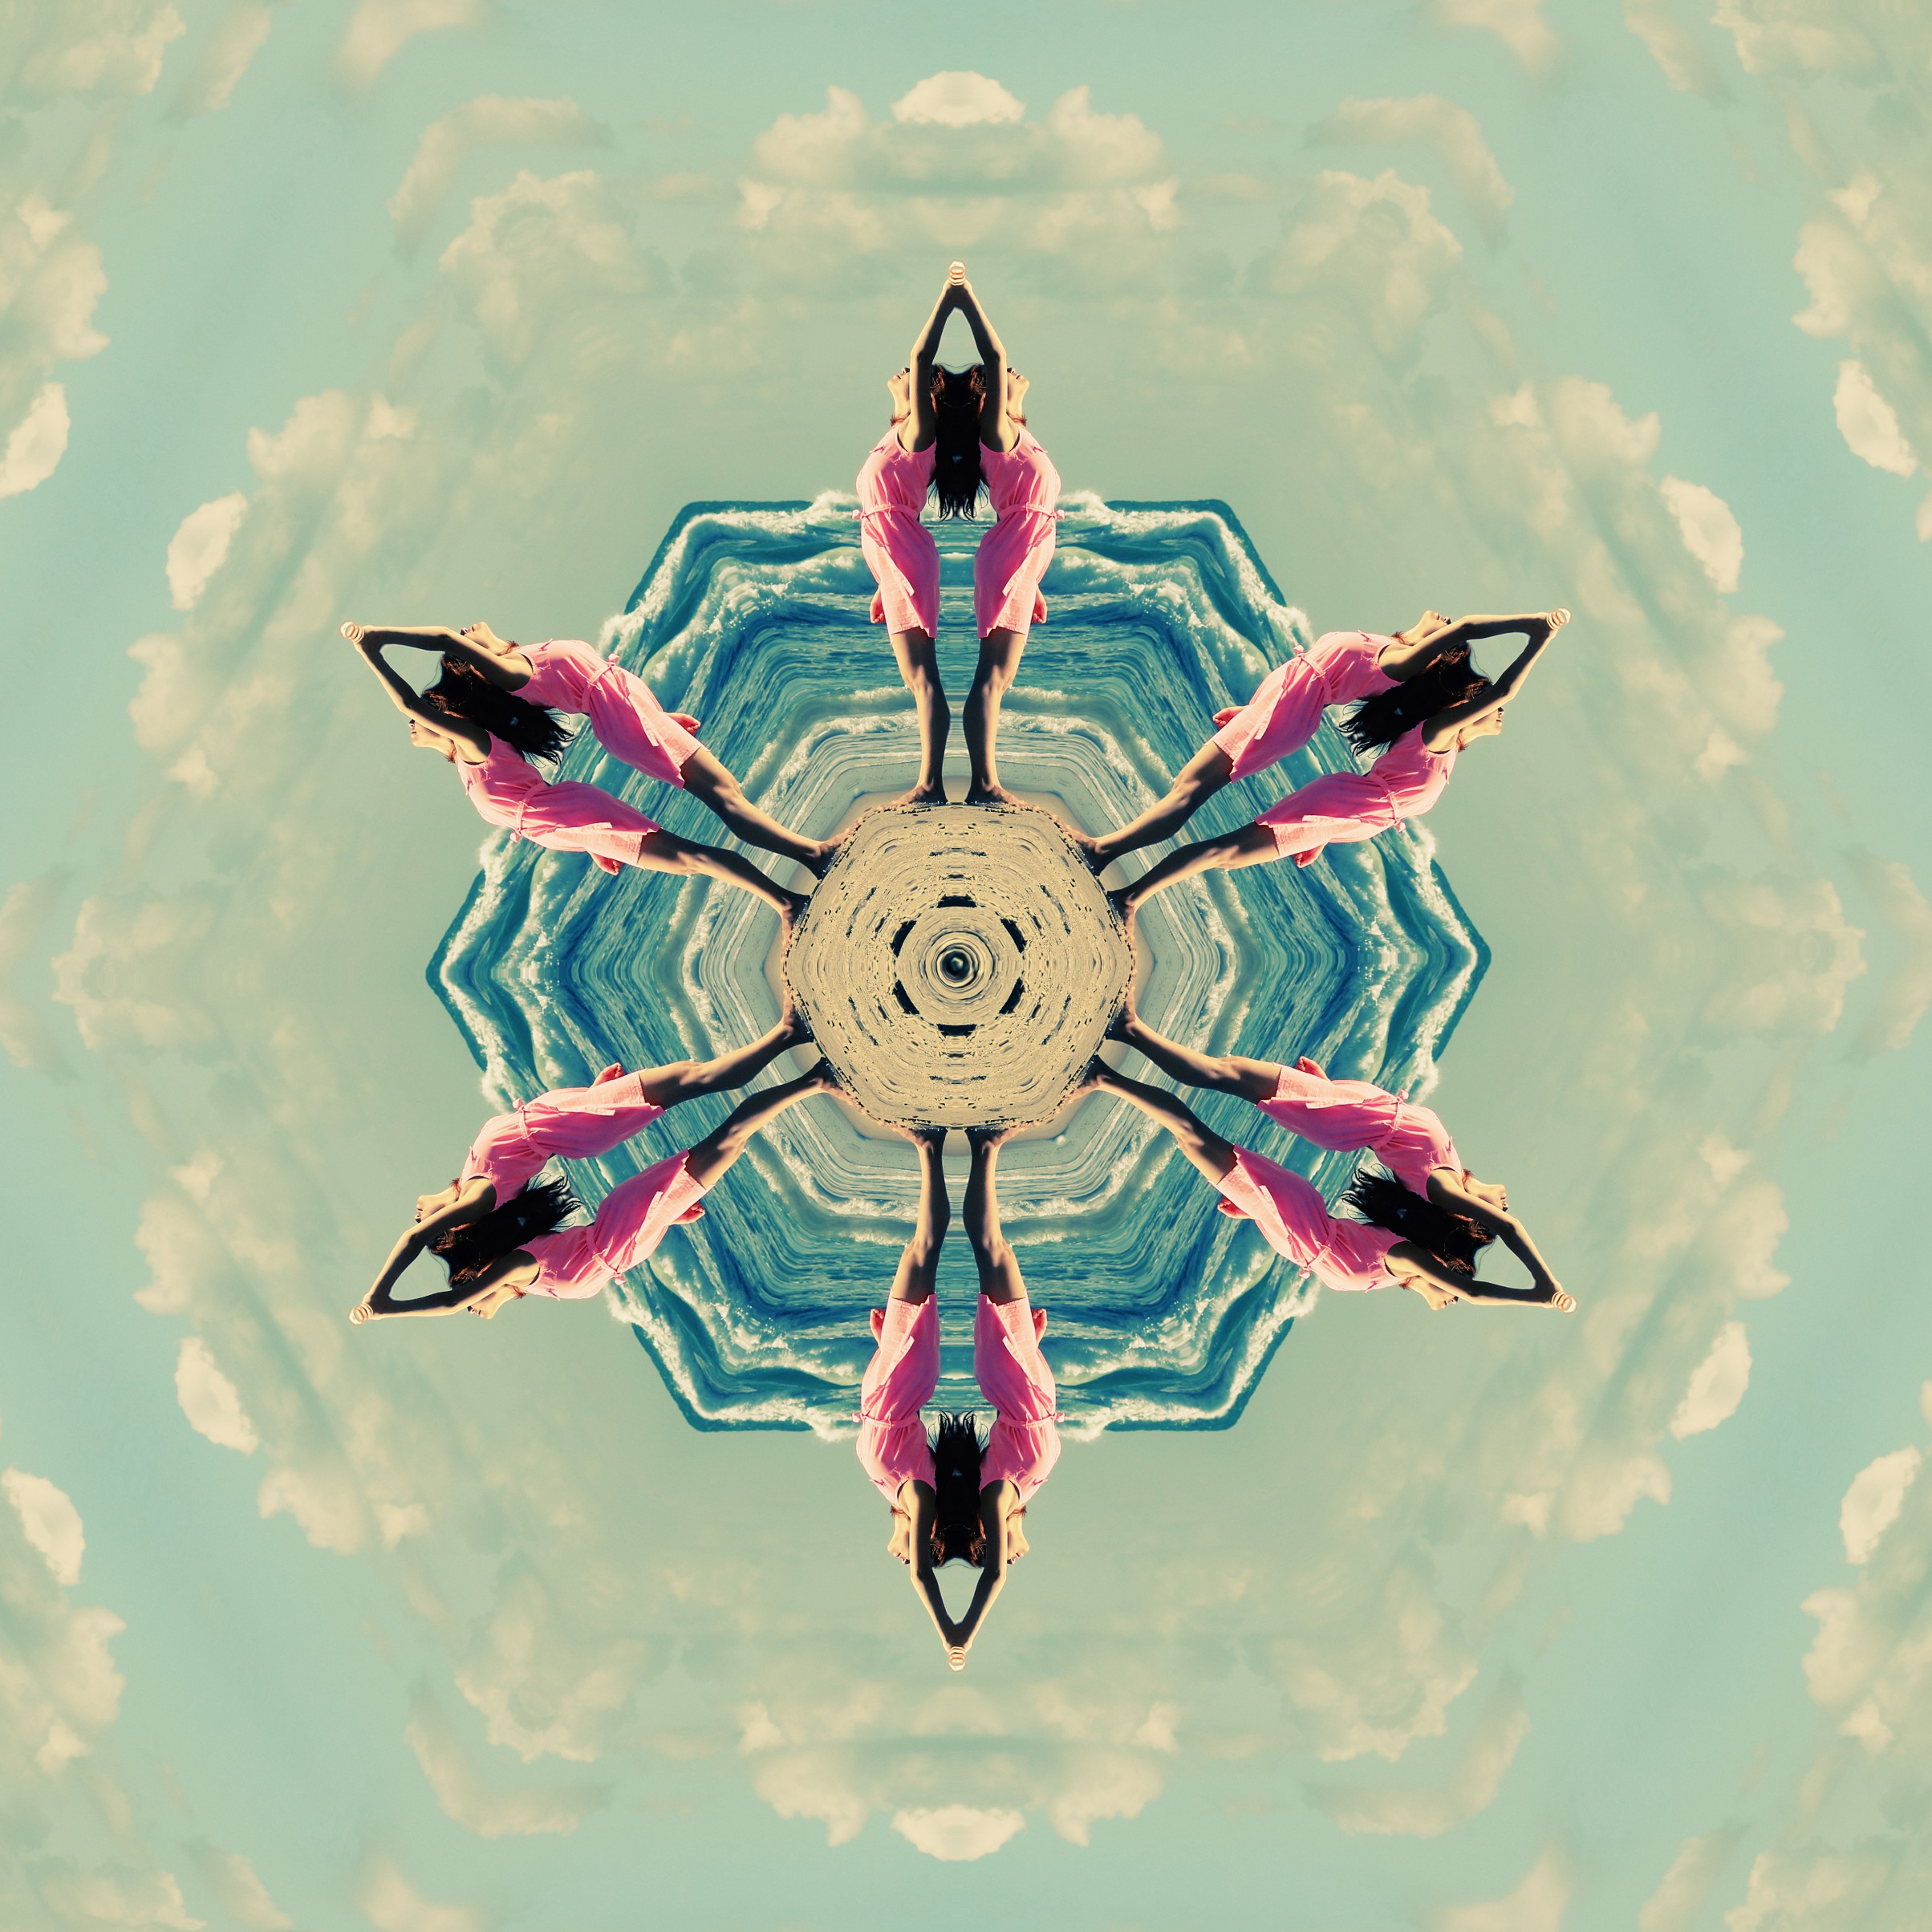 I designed a kaleidoscopic pattern of me practicing yoga